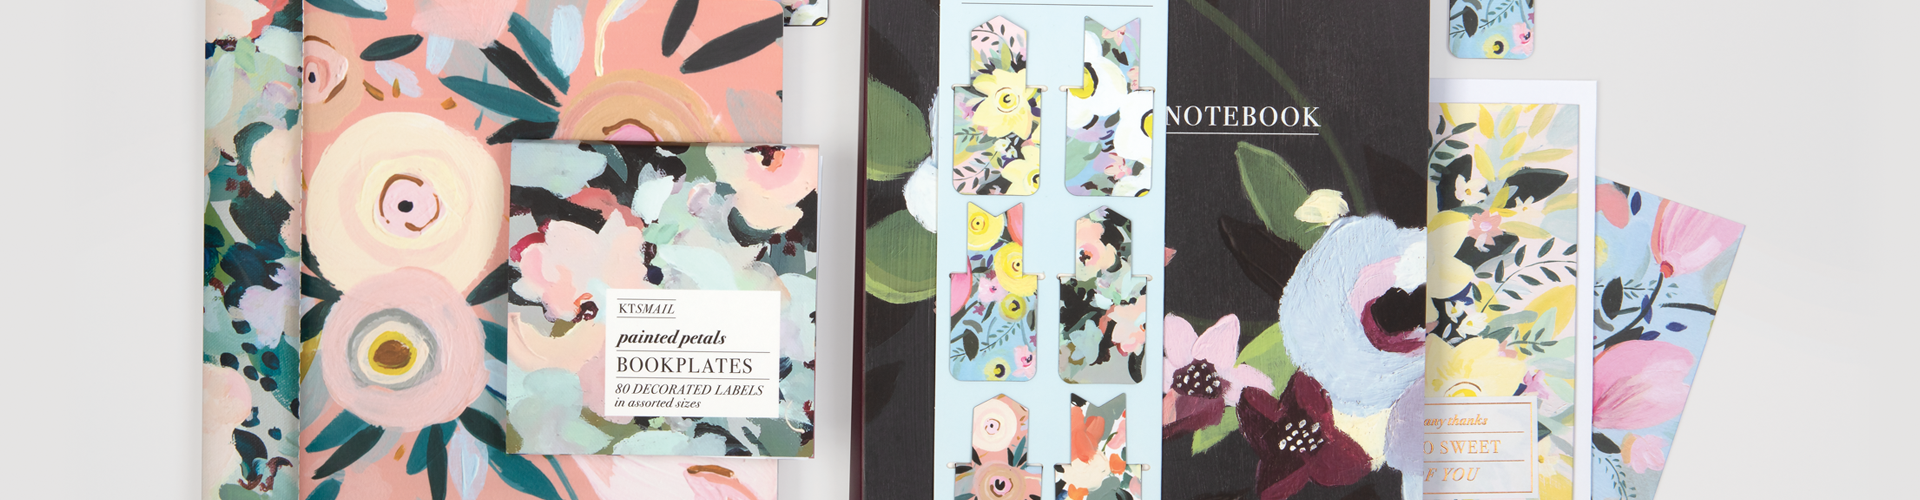 The Painted Petals Collection From Galison